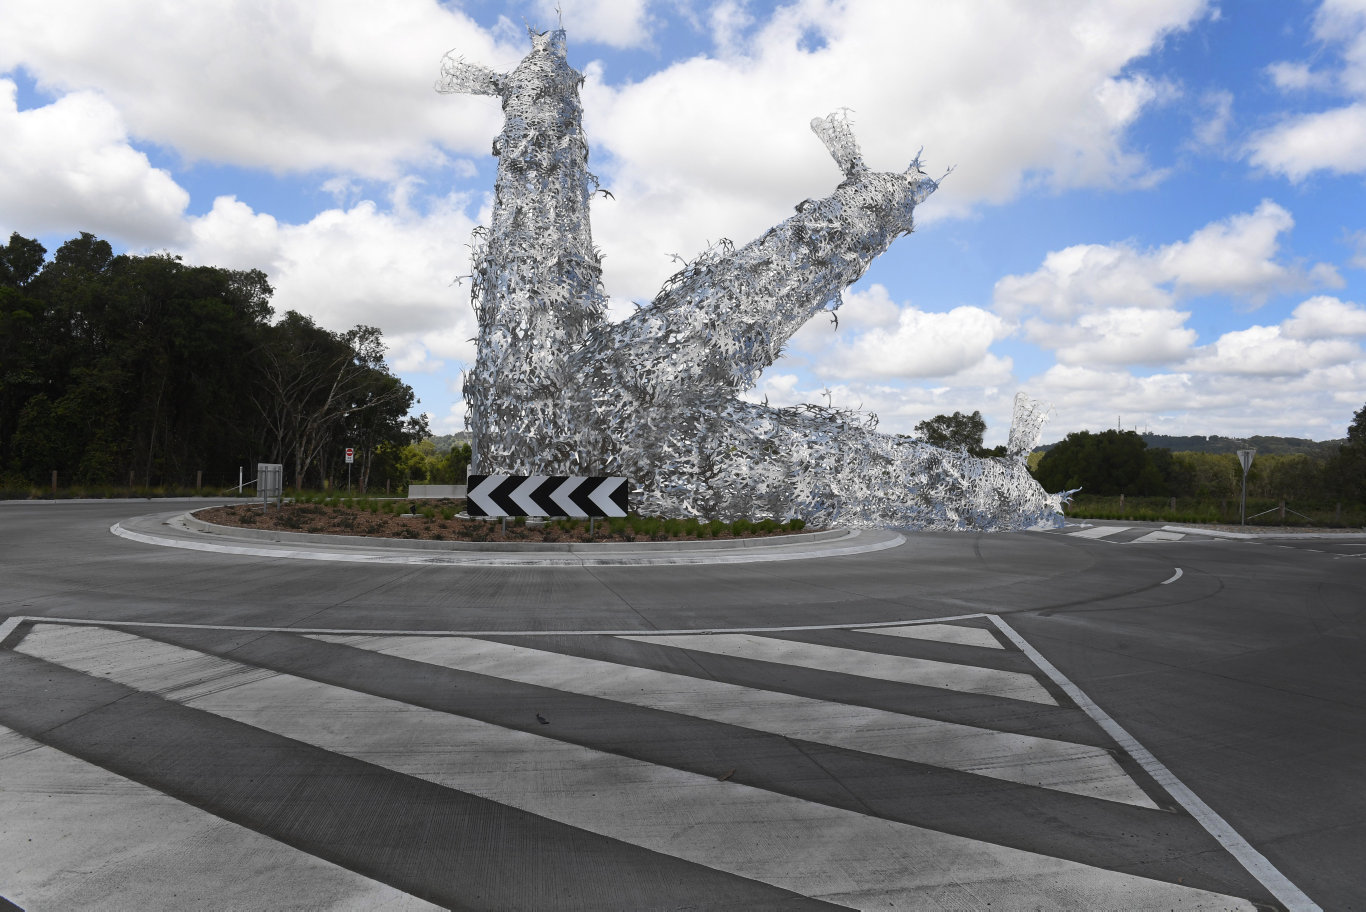 The final stage of the installation of Corey Thomas' 12 metre tall lighthouse sculpture on the new Bayshore Drive Roundabout at Byron Bay.